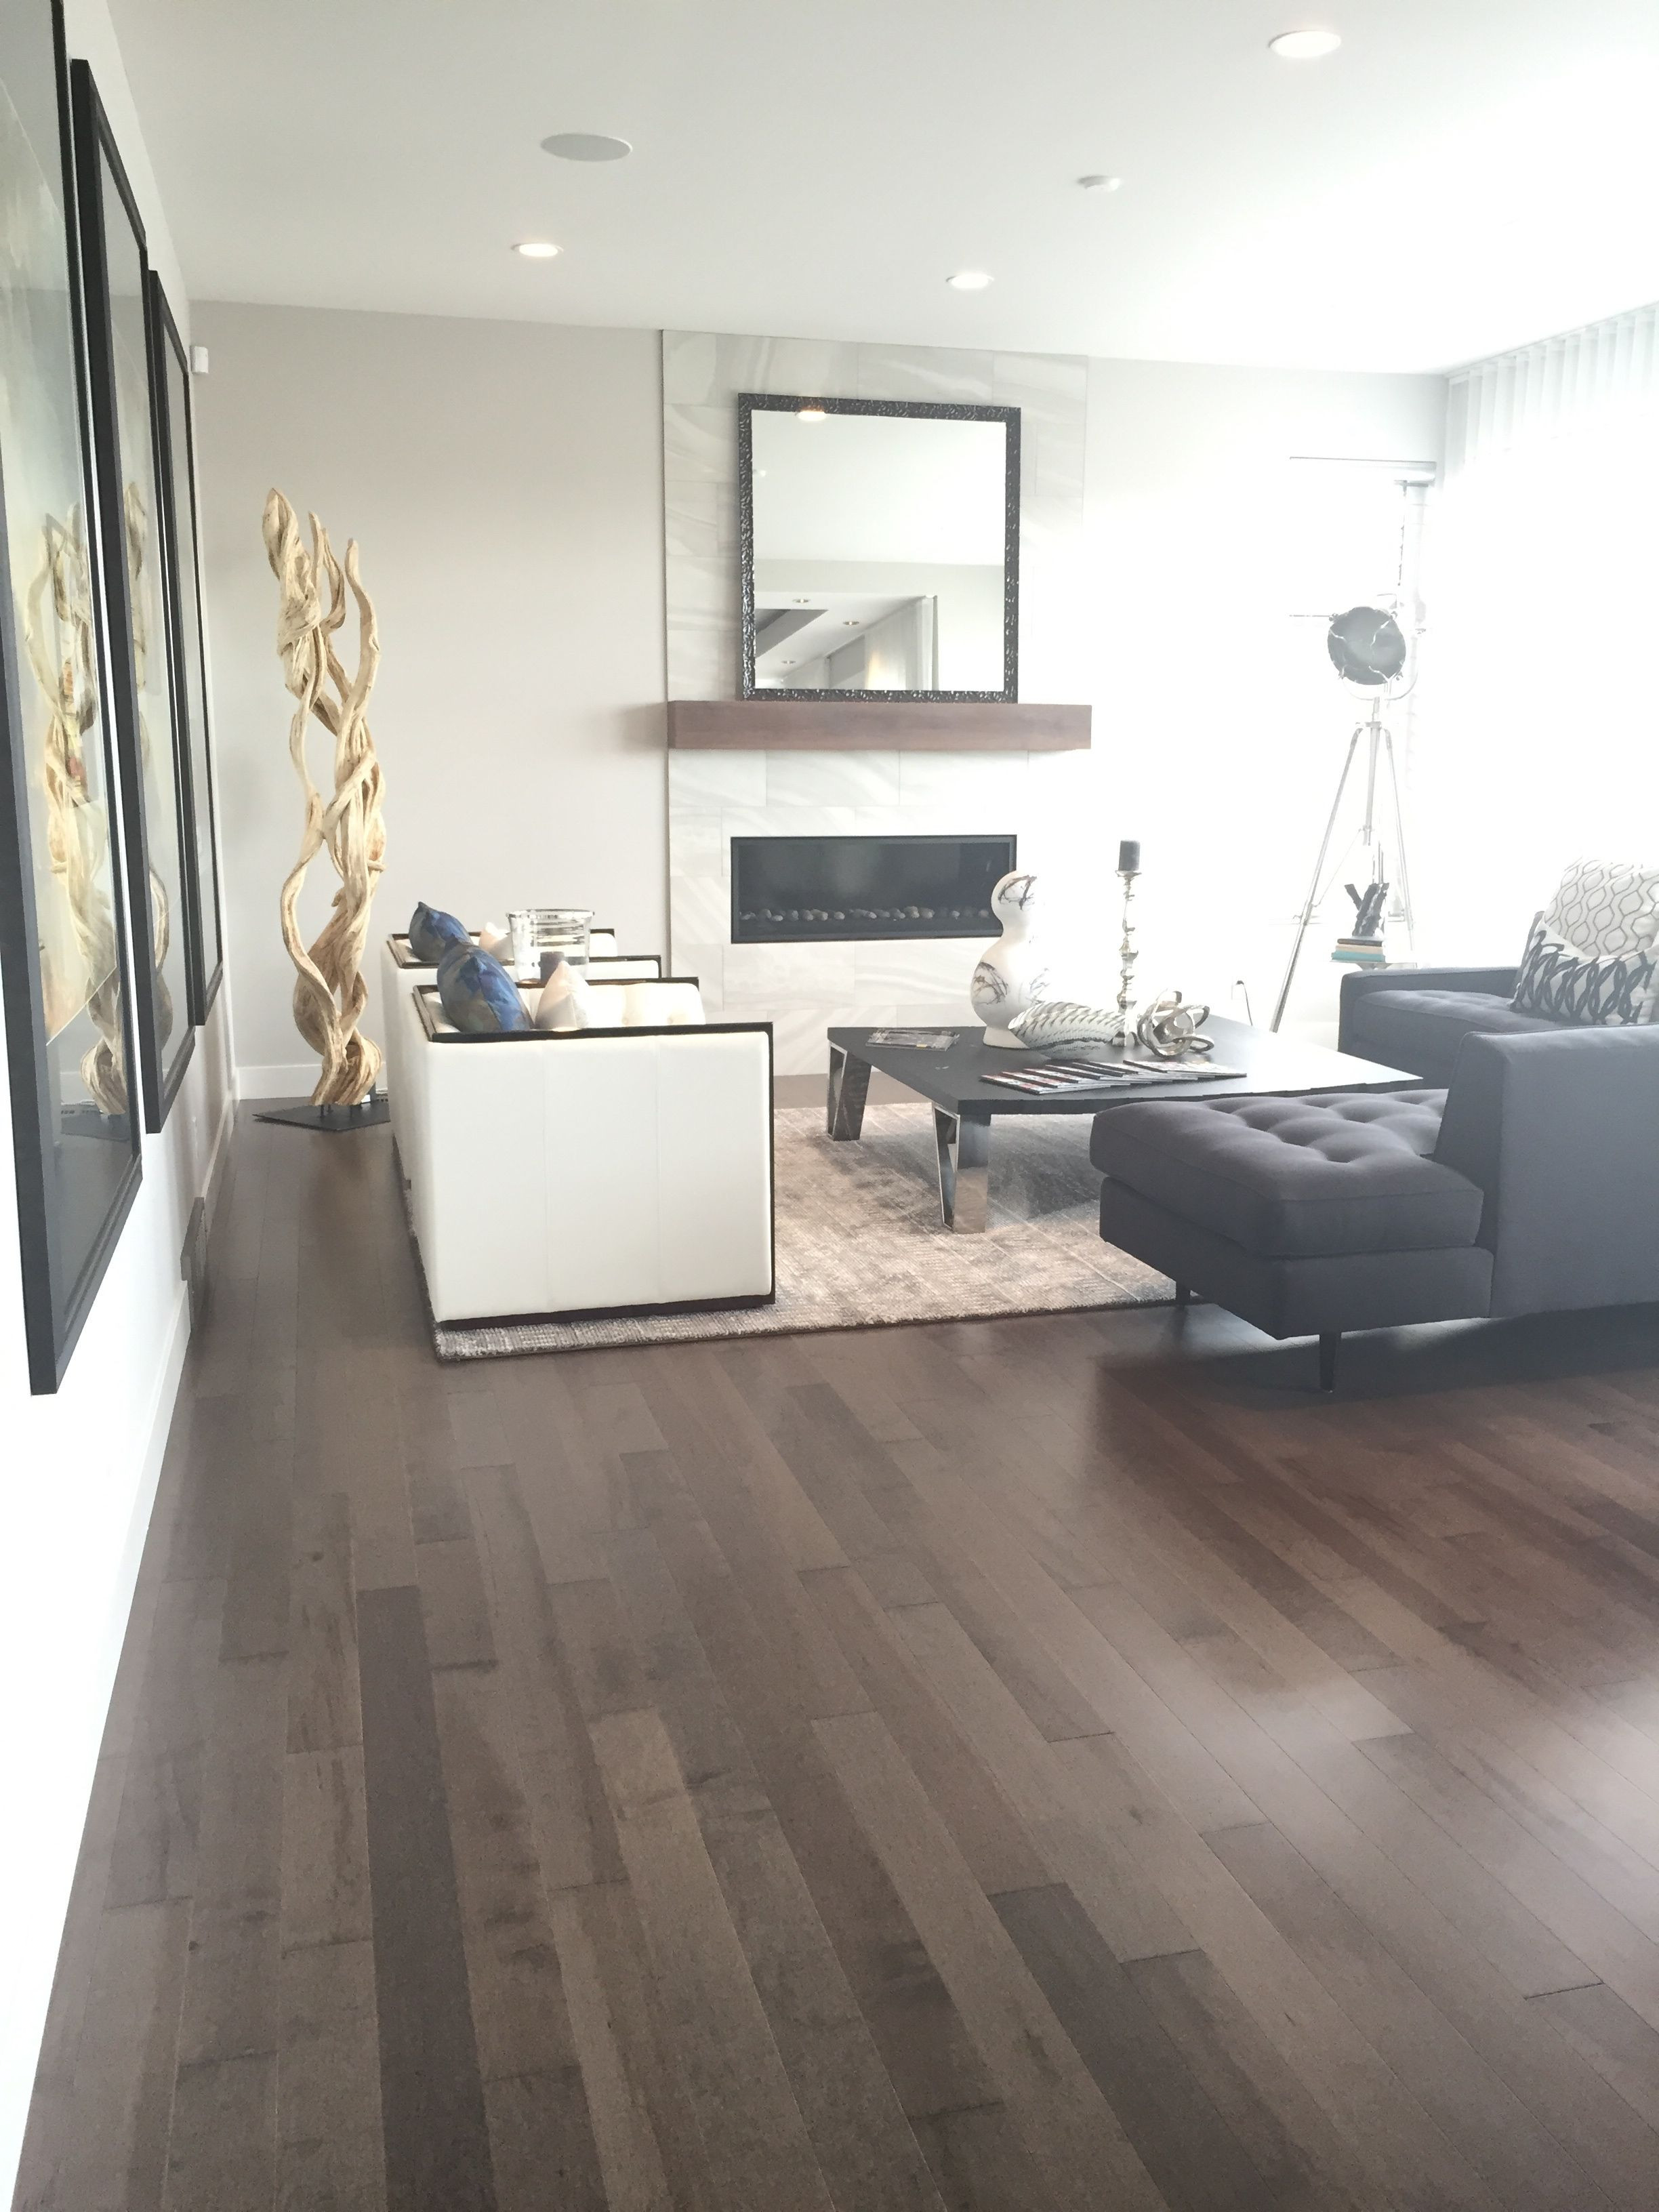 hardwood floor underlayment of smoky grey essential hard maple tradition lauzon hardwood with beautiful living room from the cantata showhome featuring lauzons smokey grey hard maple hardwood flooring from the essential collection